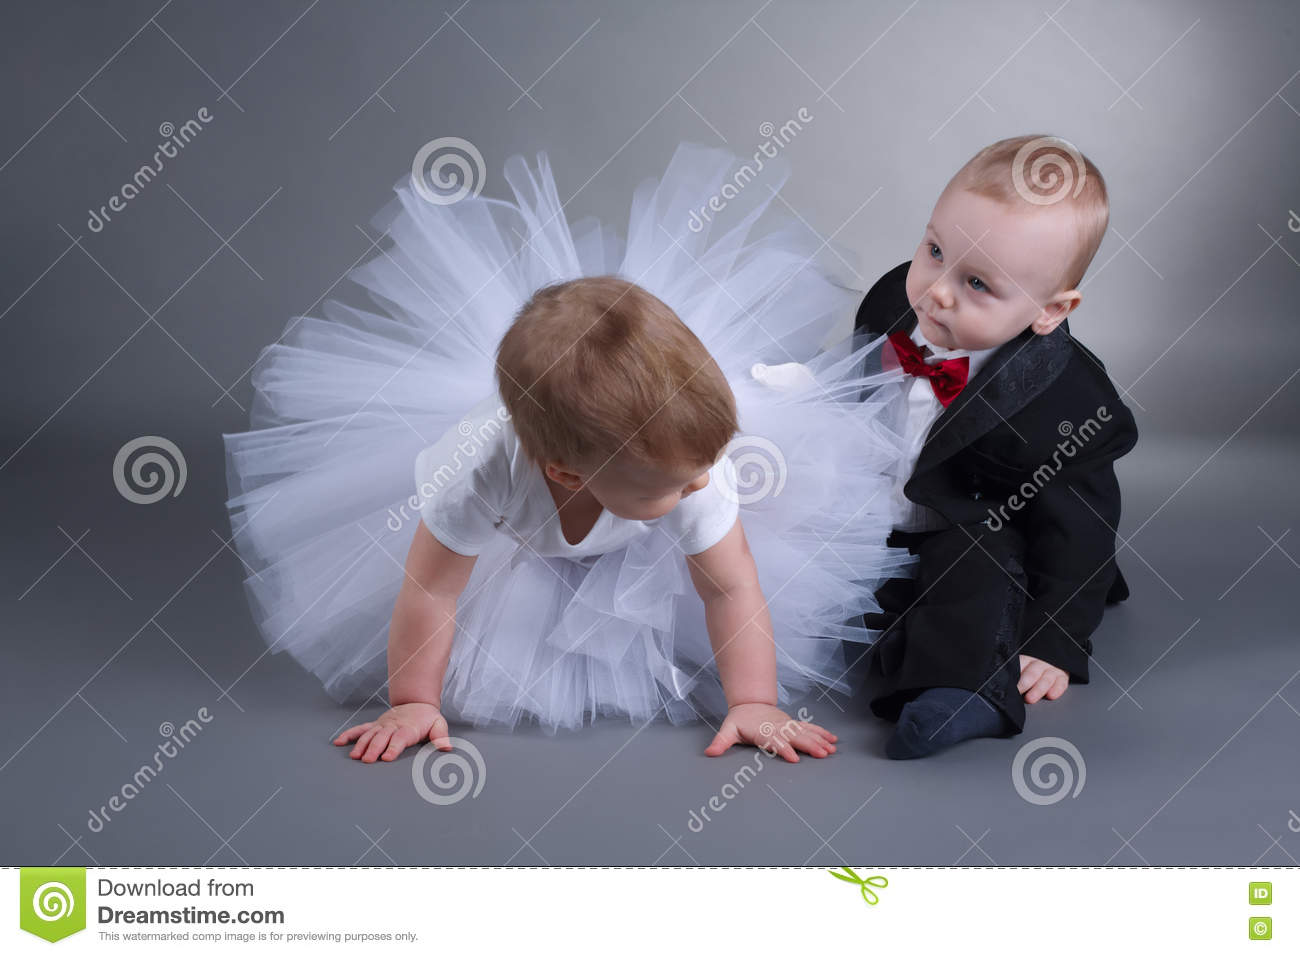 5bf051b4b78a9 Cute Boy And Girl In Wedding Dress Stock Image - Image of flowers ...